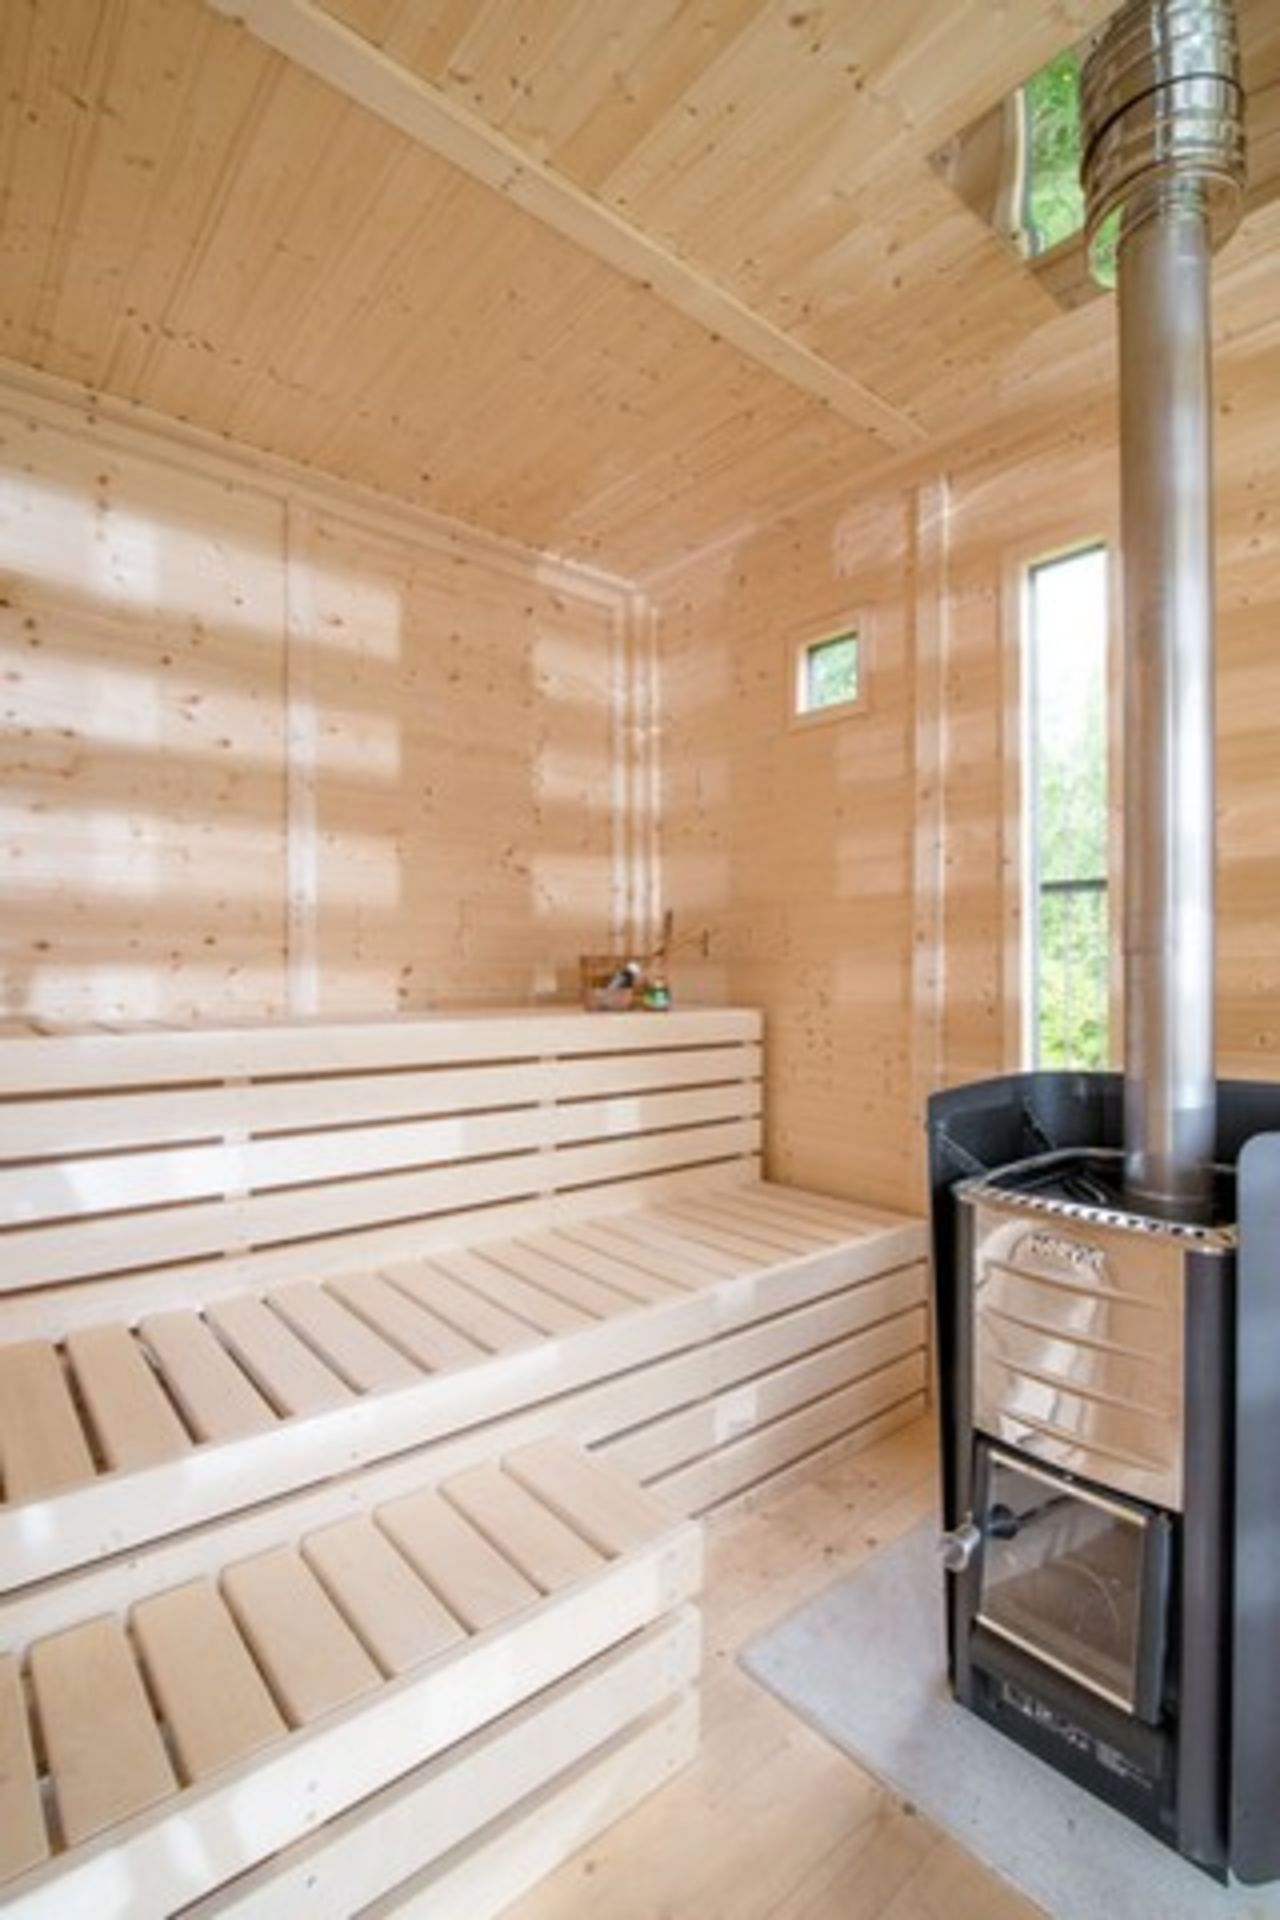 Lot 19055 - + VAT Brand New 4 x 3m Sauna Cube - 3 Sunscreen Walls With Tempered Glass - 4 Insulated Wall Panels